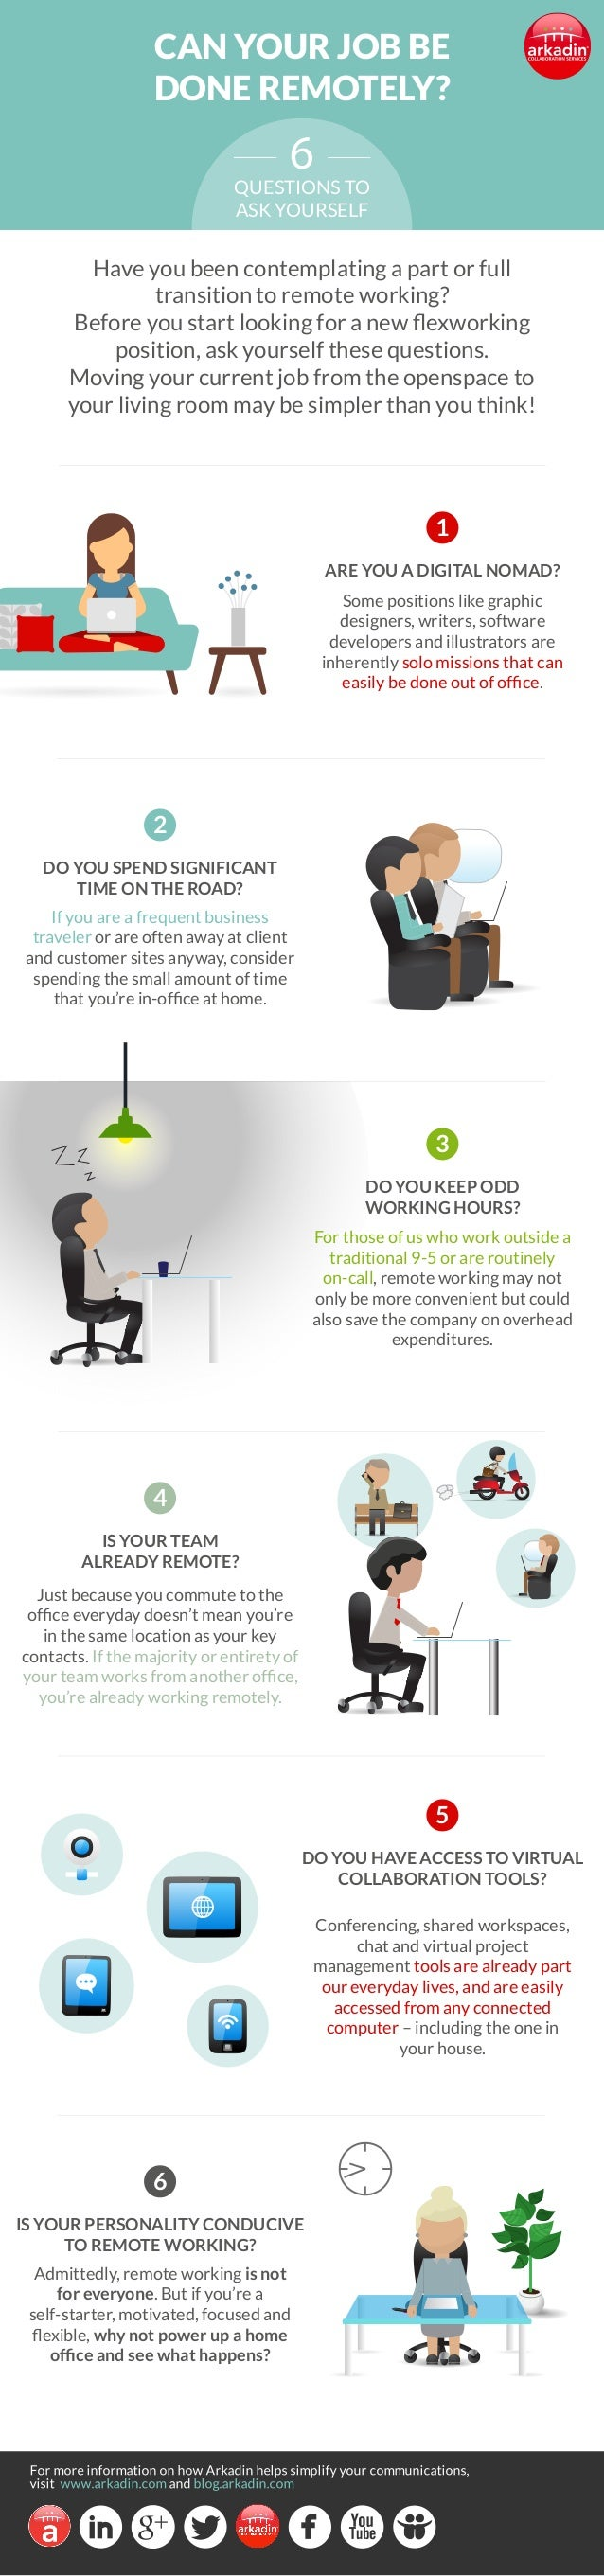 CAN YOUR JOB BE  DONE REMOTELY?  6  QUESTIONS TO  ASK YOURSELF  Have you been contemplating a part or full  transition to ...